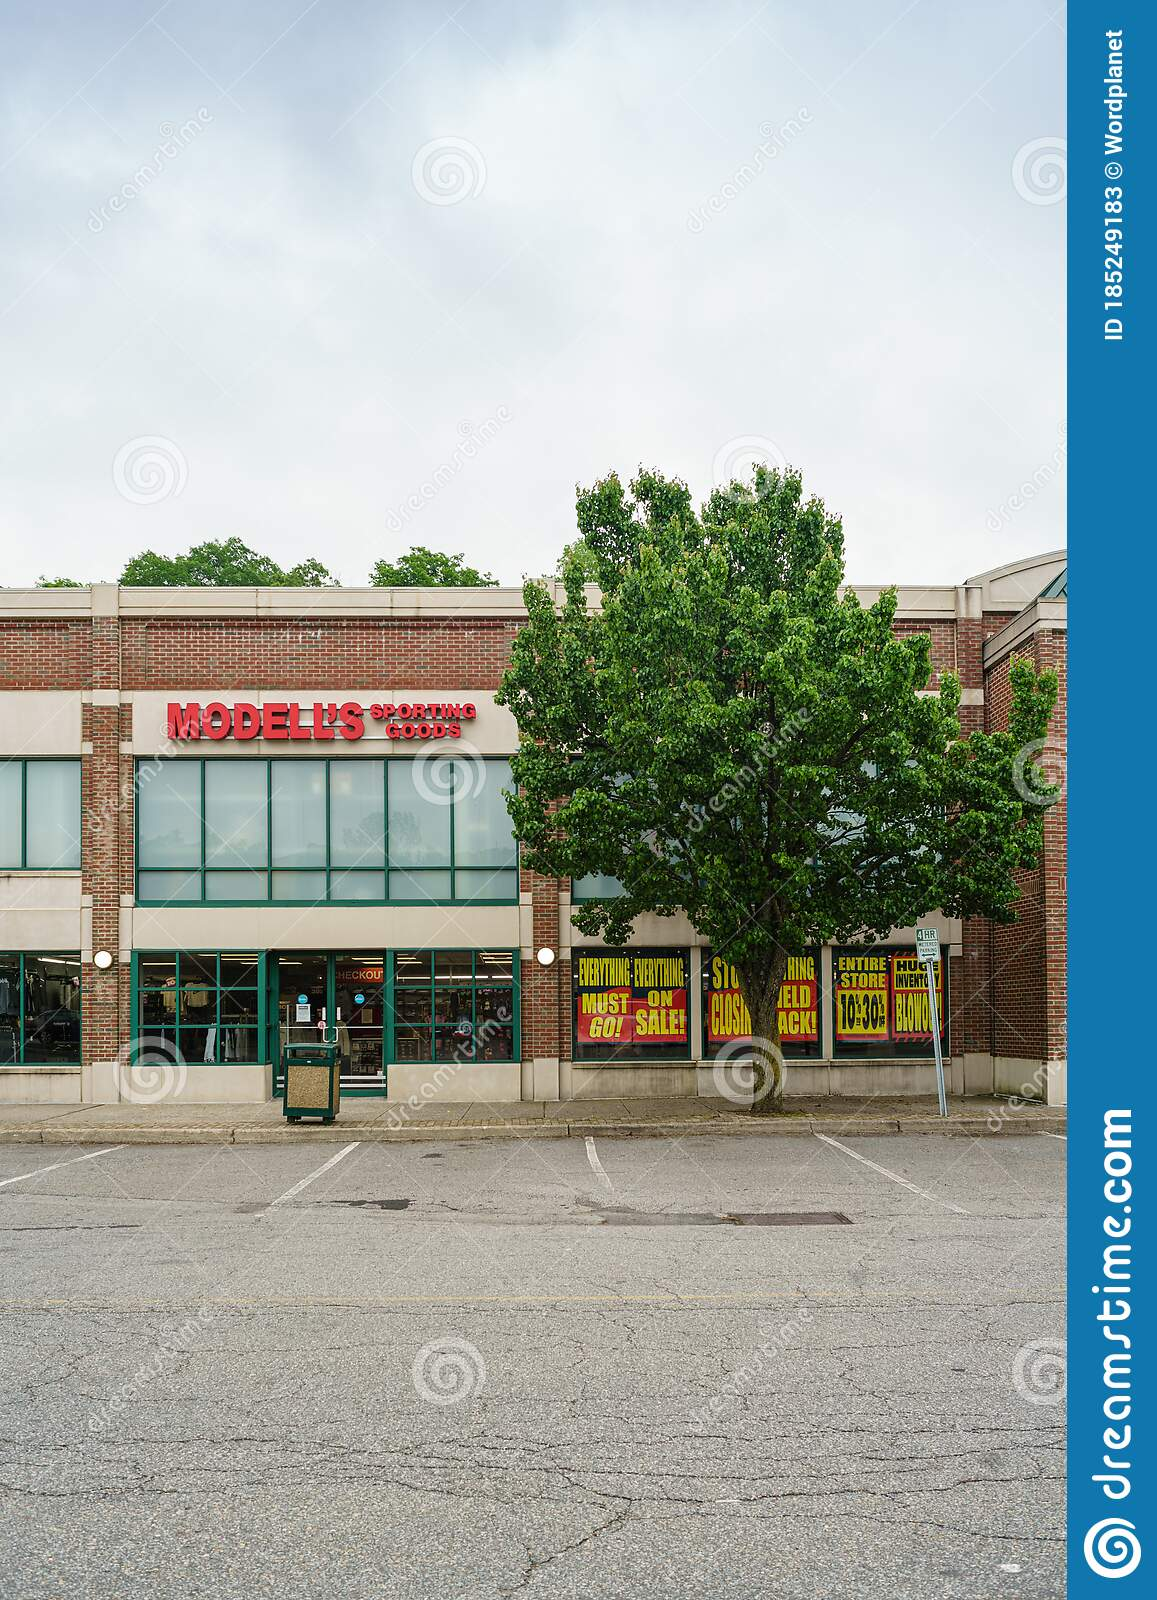 modells sporting goods store going out of business sale editorial stock photo image of north parking 185249183 modells sporting goods store going out of business sale editorial stock photo image of north parking 185249183